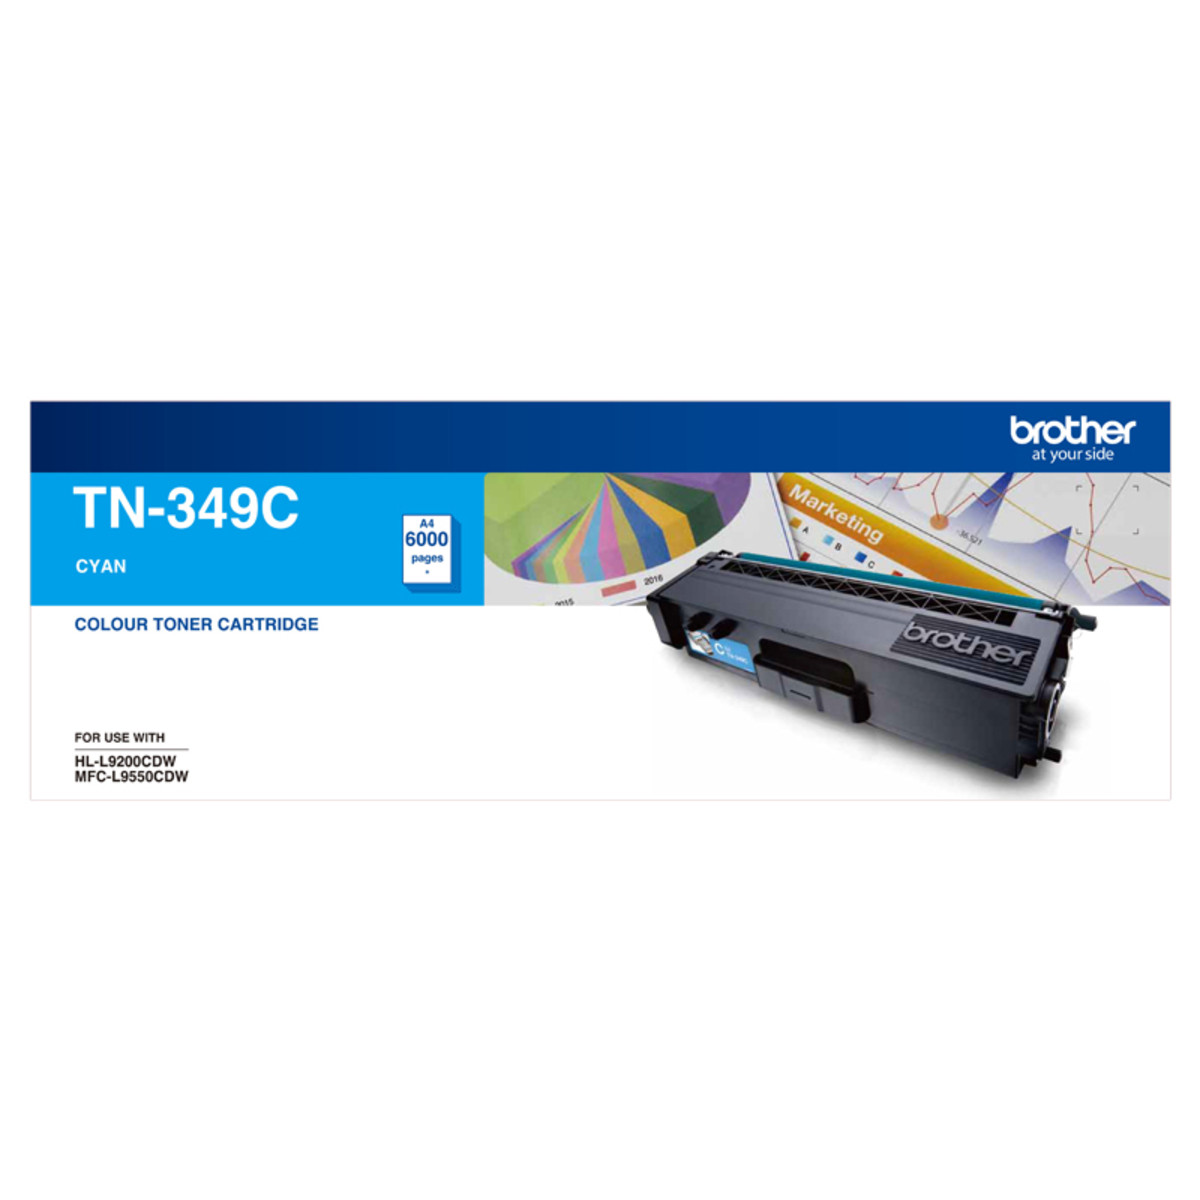 Brother TN-349C Cyan Toner Cartridge